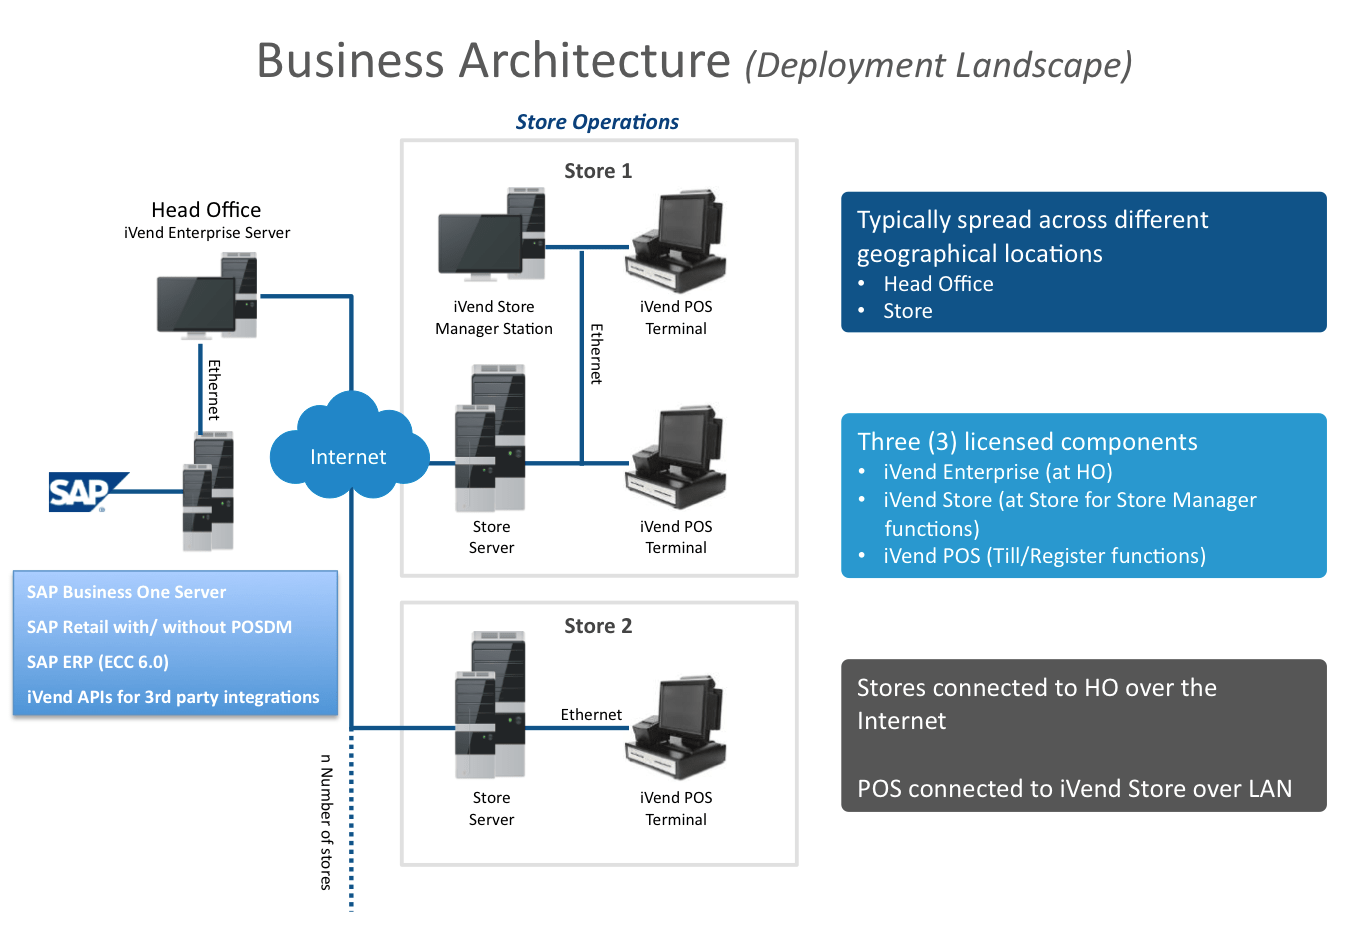 sap business one architecture diagram gibson wiring diagrams les paul ivend deployment